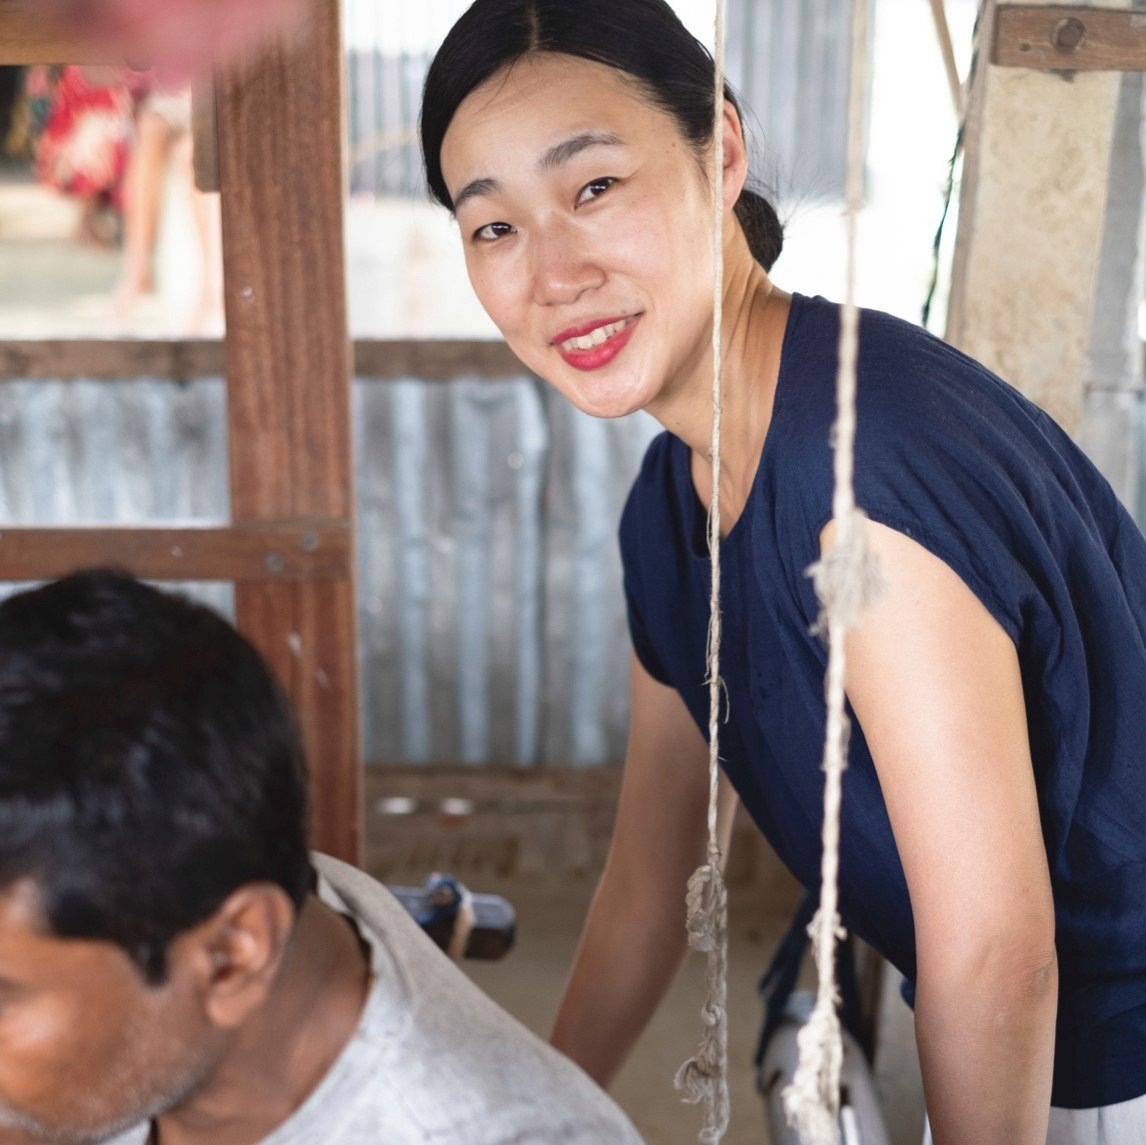 First inspired in Delhi, Fumie Kobayashi now brings the magic of traditional #indian #fabrics to #Japan & the world — here's her story from #WeAreTomodachi: https://bit.ly/2Dm5tfg  #GlobalGoals #SDG8